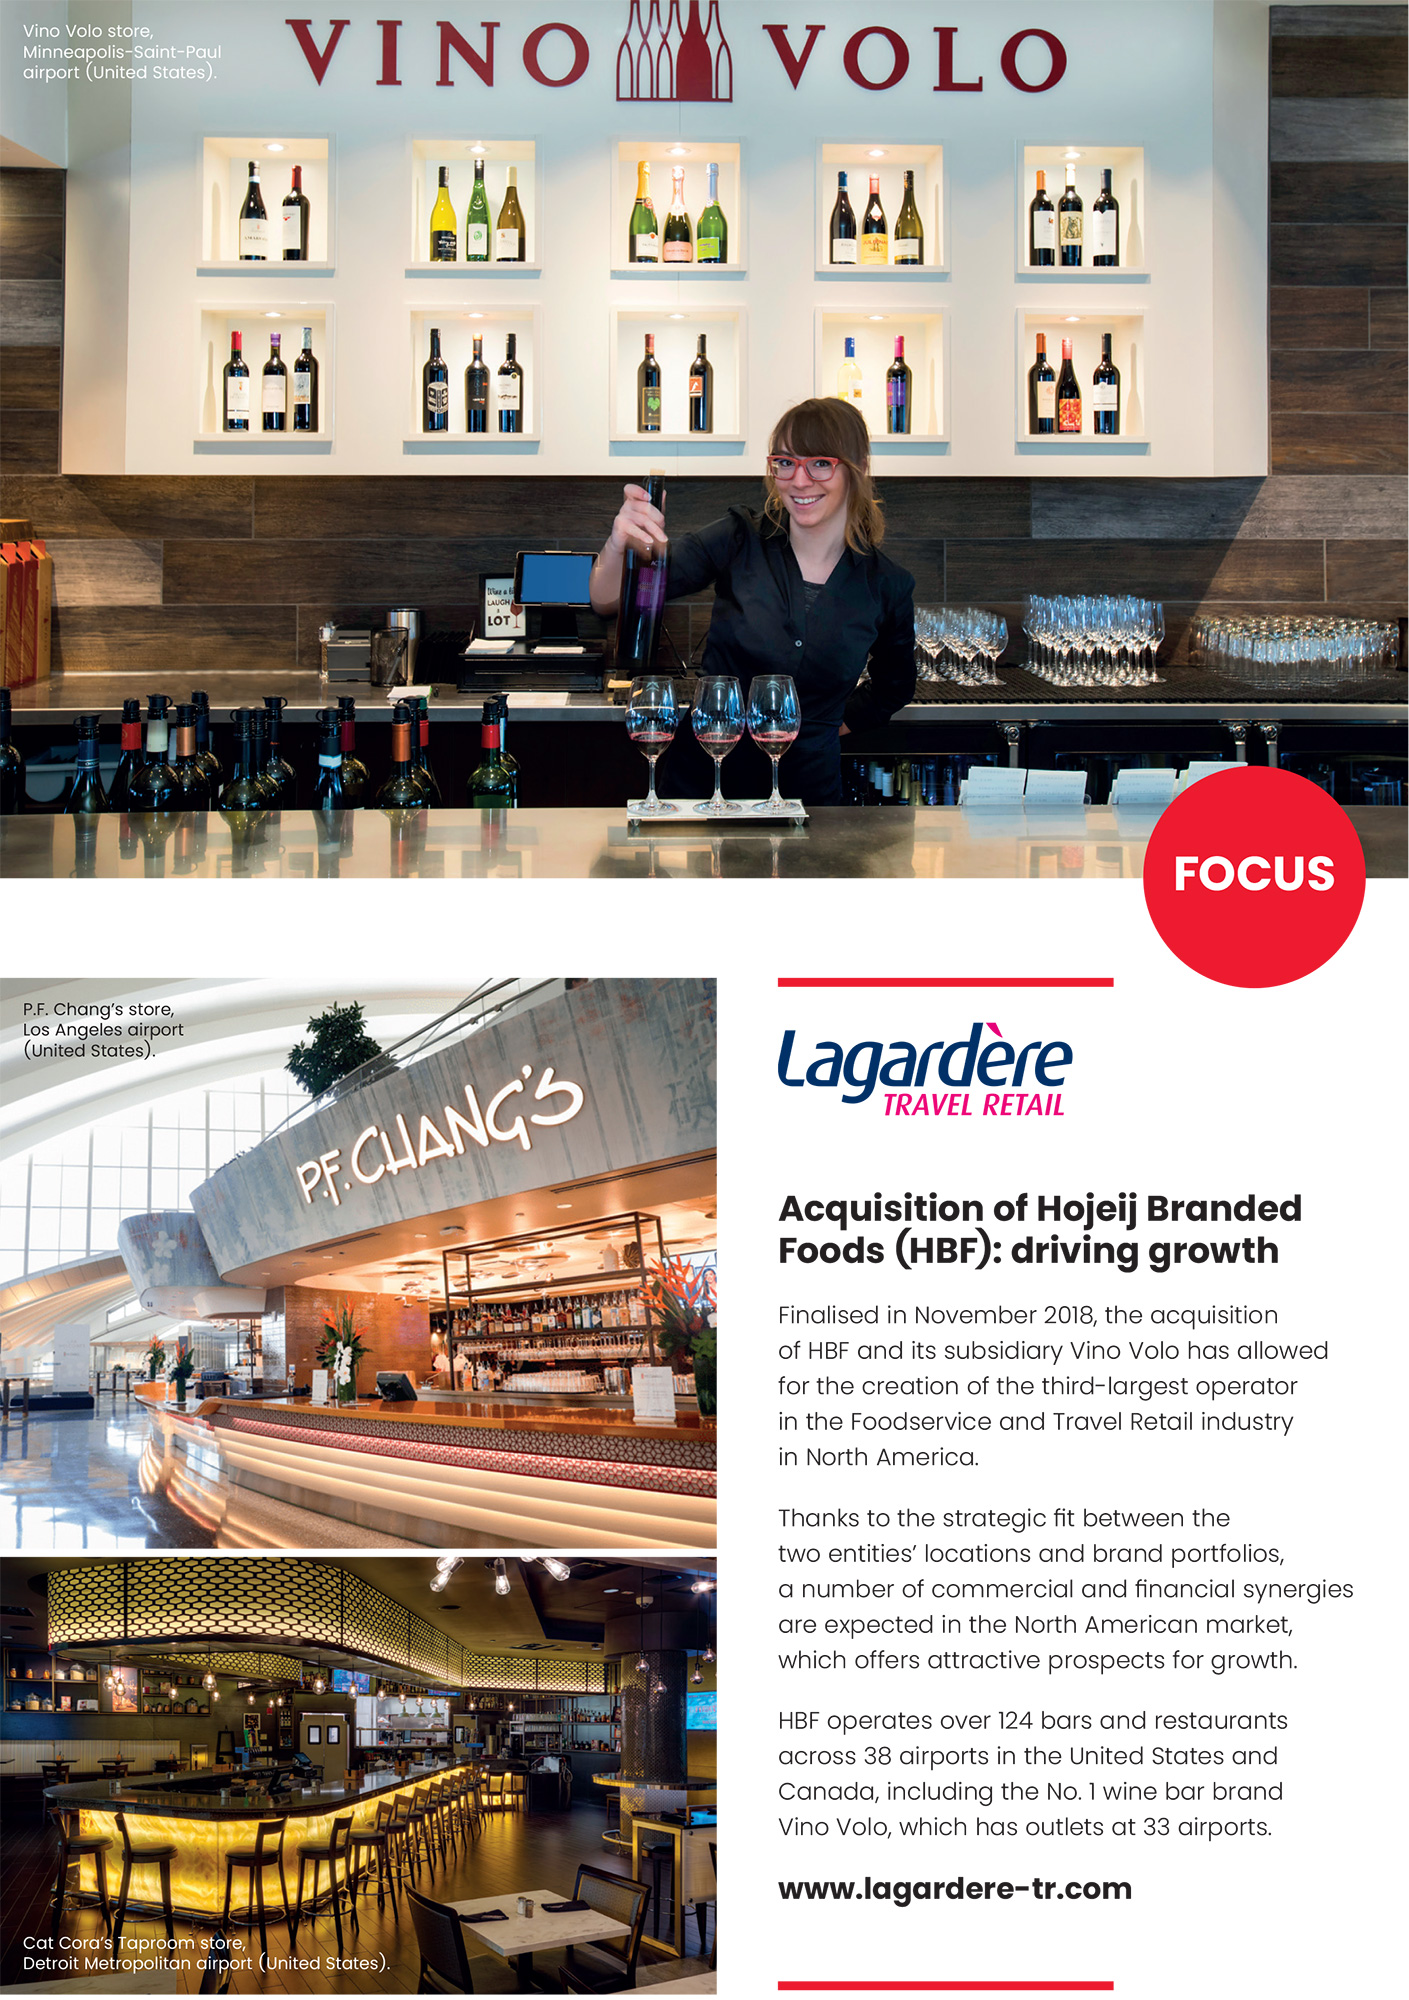 Lagardère Travel Retail: Focus